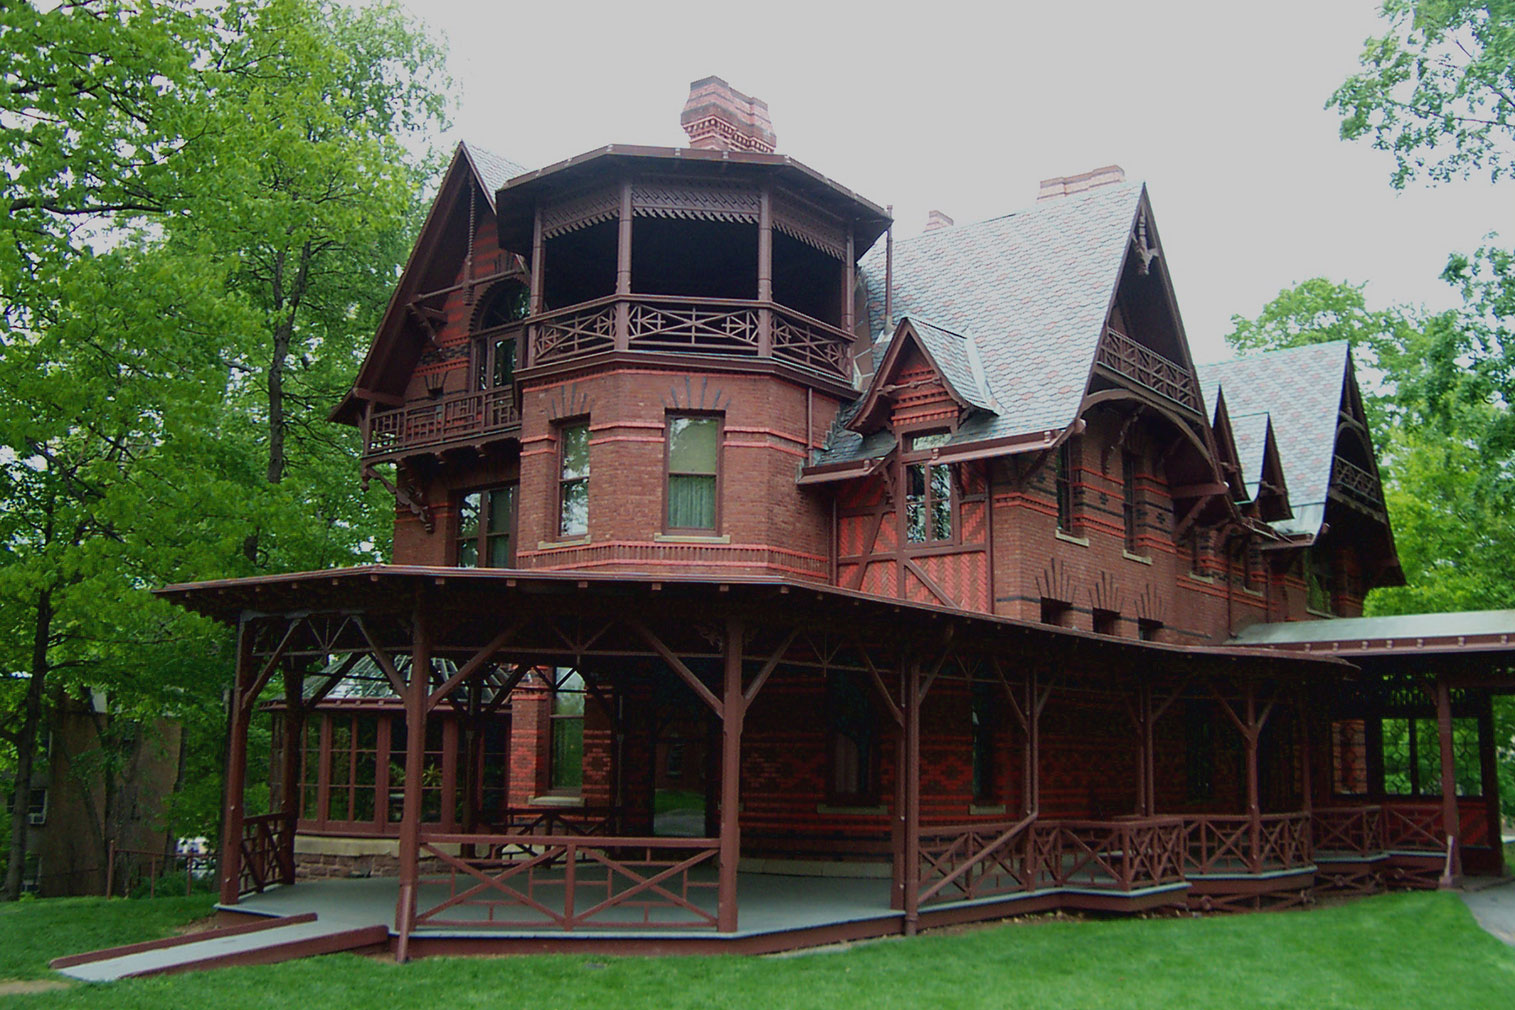 Mark Twain House - the writer's home